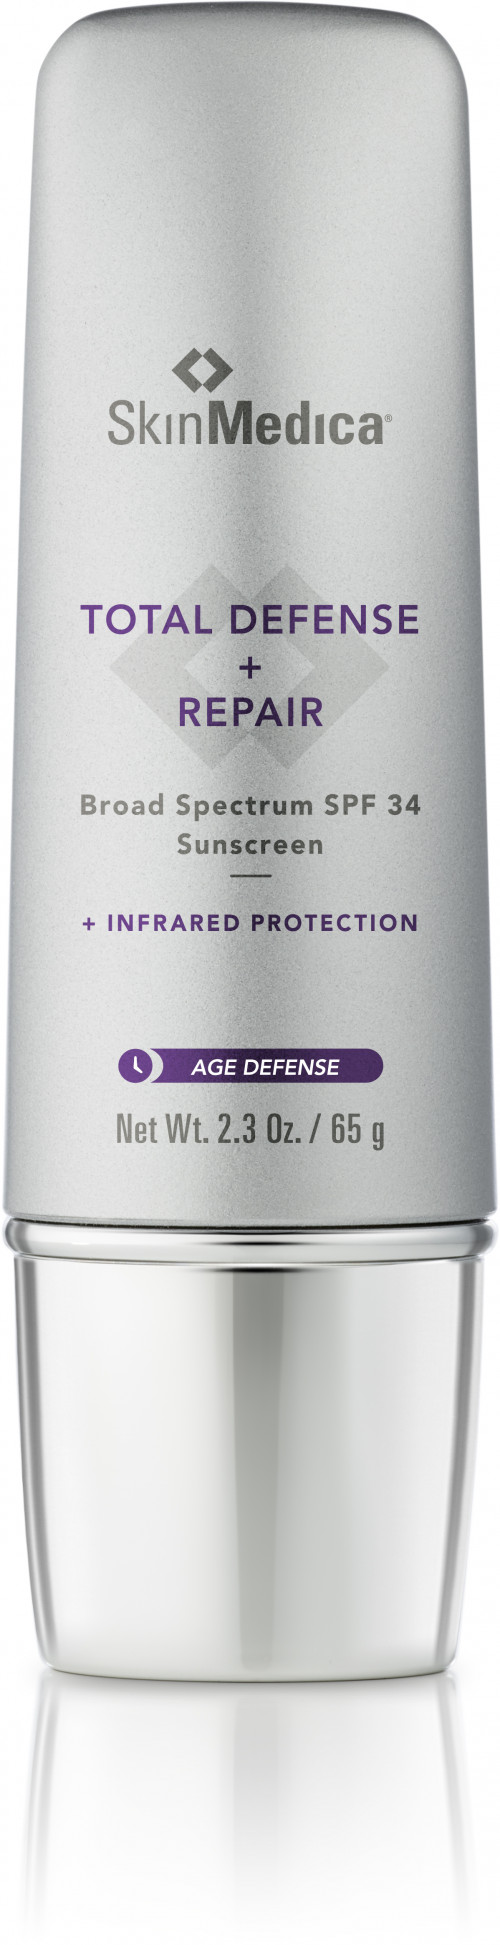 Total Defense + Repair Broad Spectrum Sunscreen SPF 34  by Skinmedica